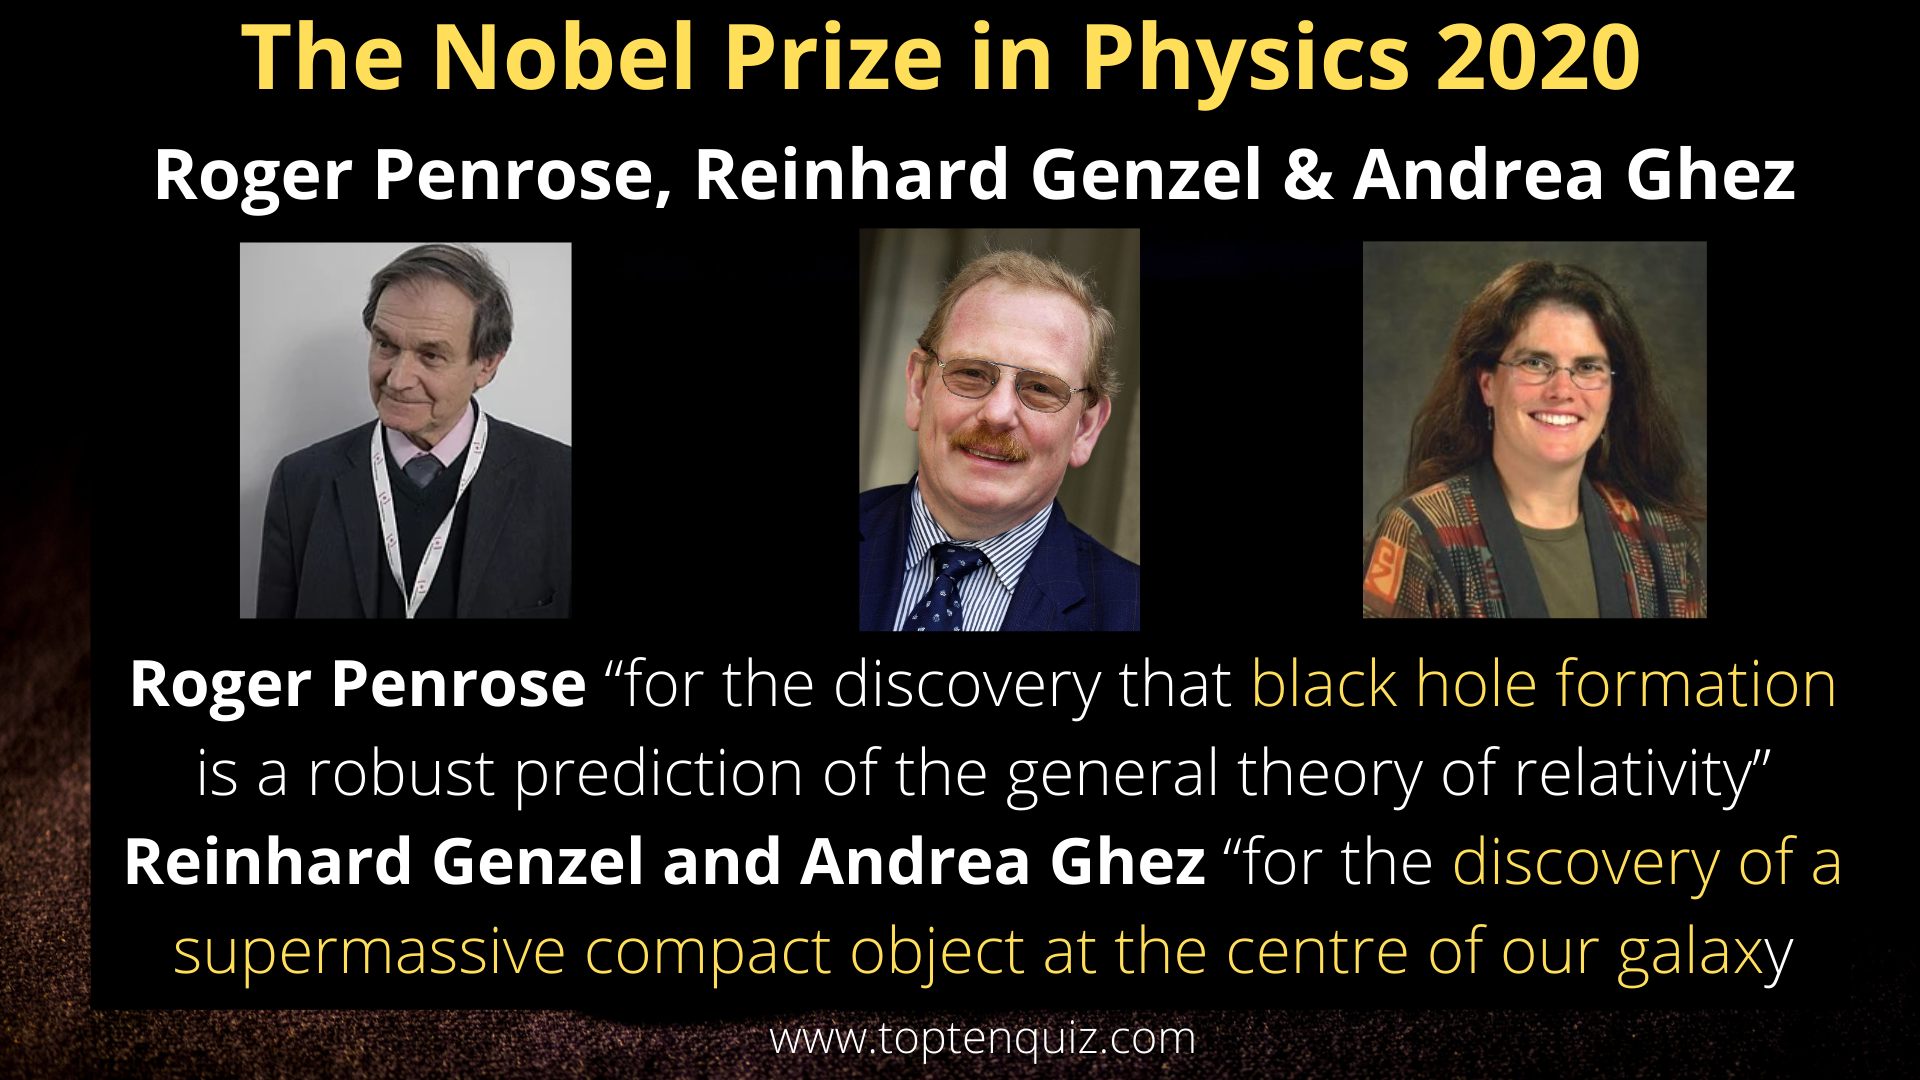 The Nobel Prize in Physics 2020 - Roger Penrose, Reinhard Genzel & Andrea Ghez